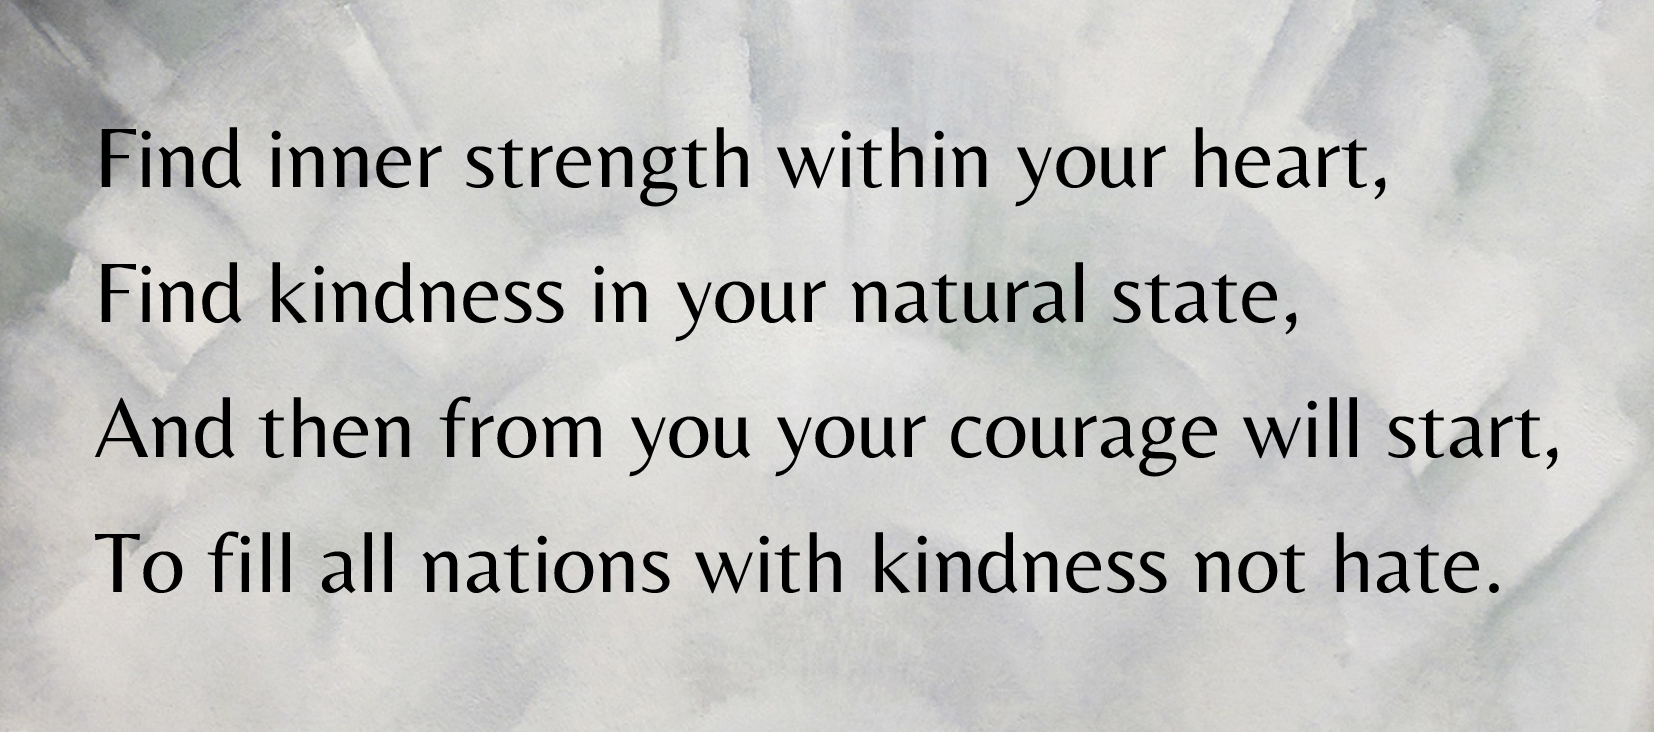 A rhyming couplet exploring kindness and courage